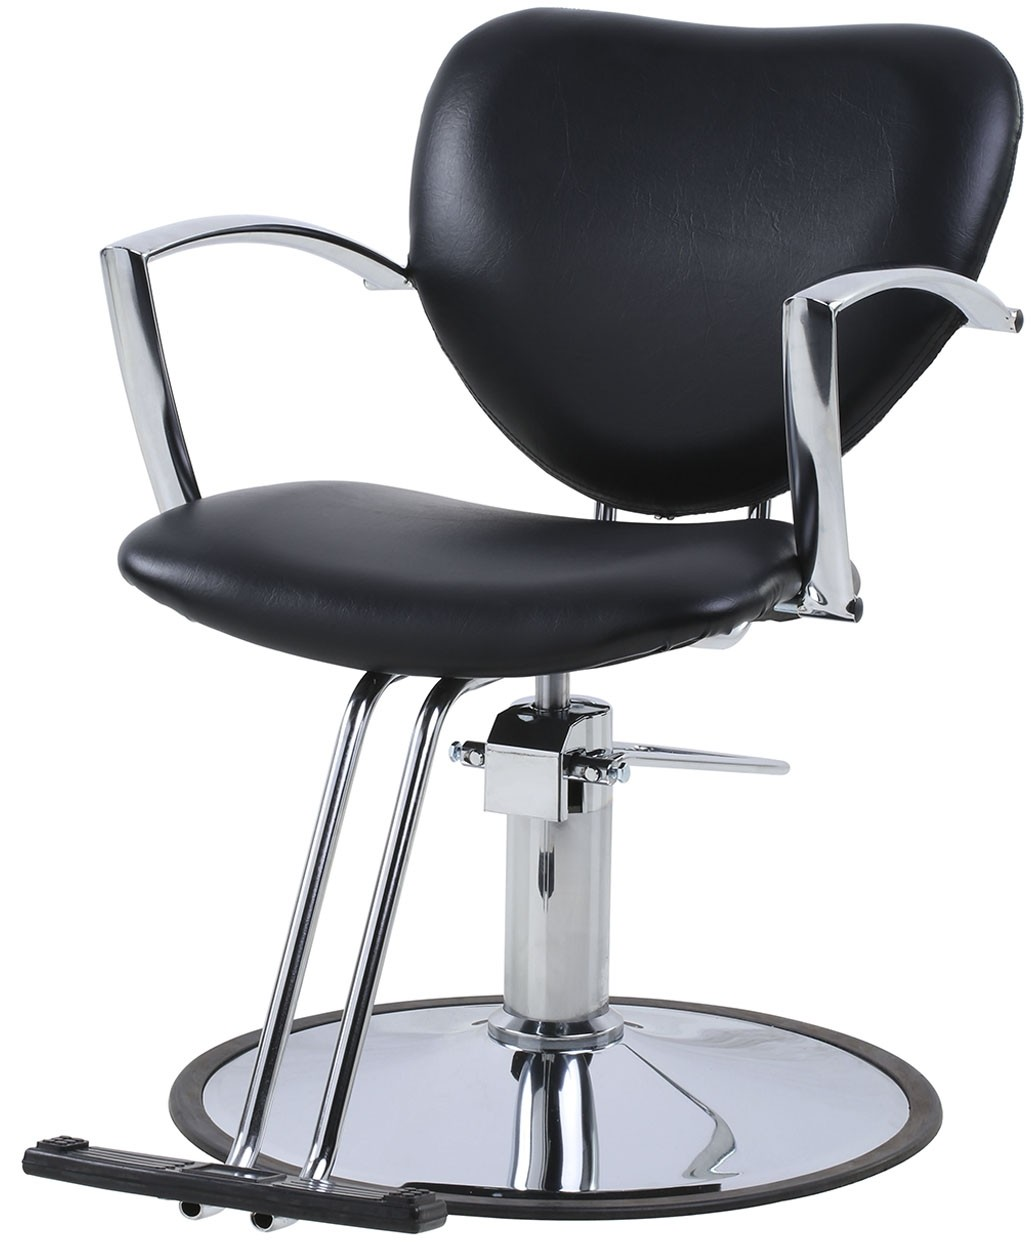 Beauty Salon Chair Salon Styling Chairs Hairdresser Hair Styling Chairs